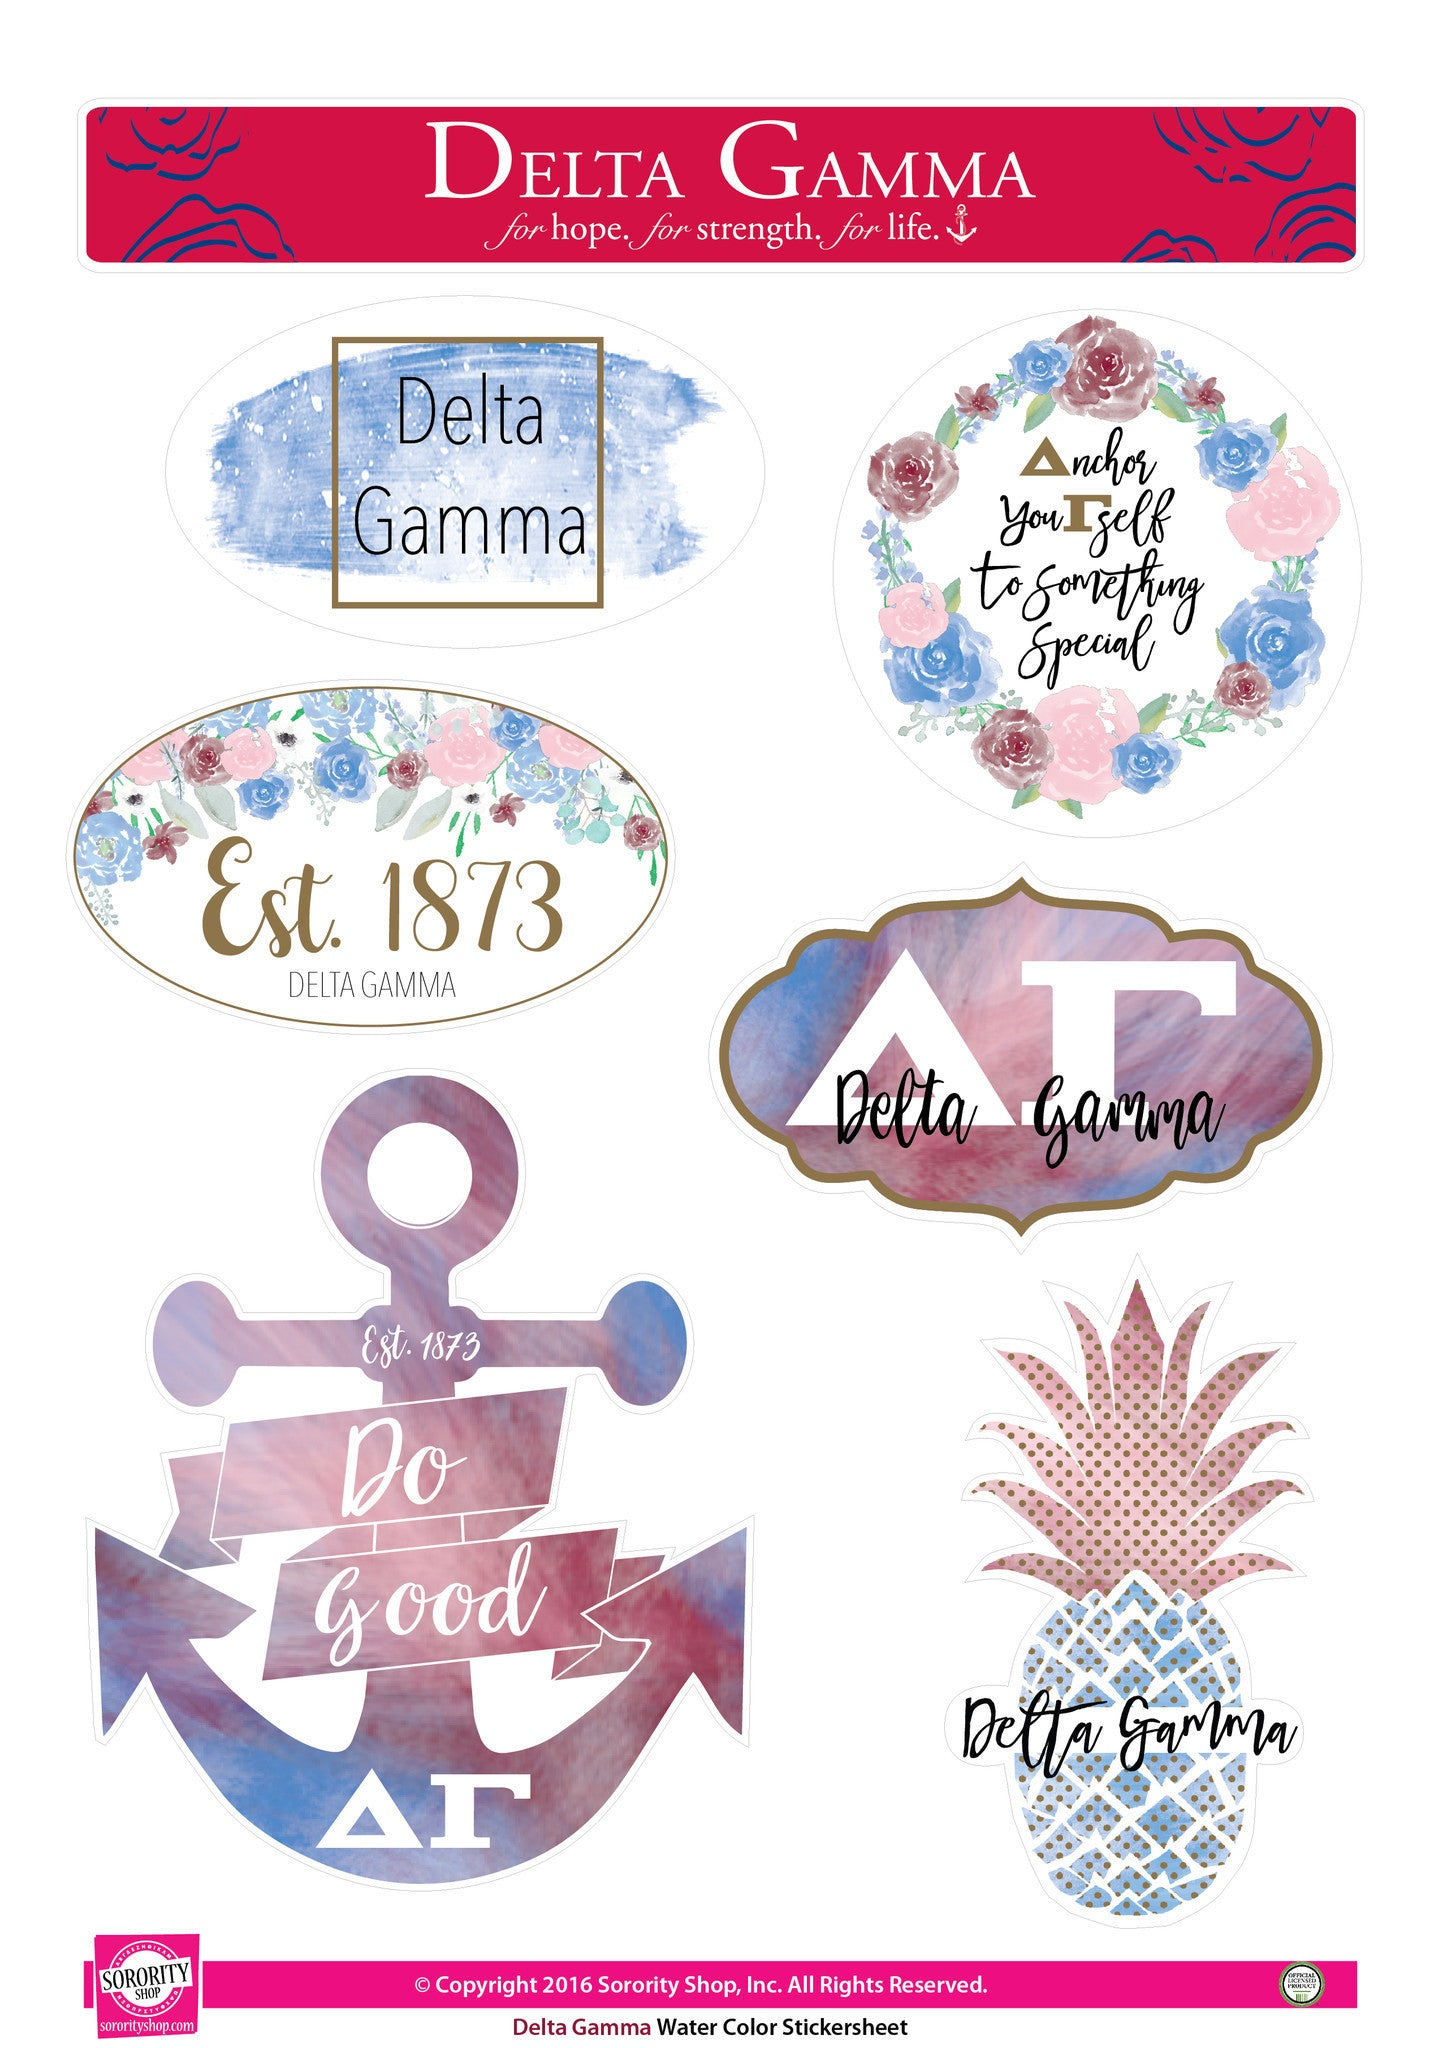 Delta Gamma Stickers watercolor designs